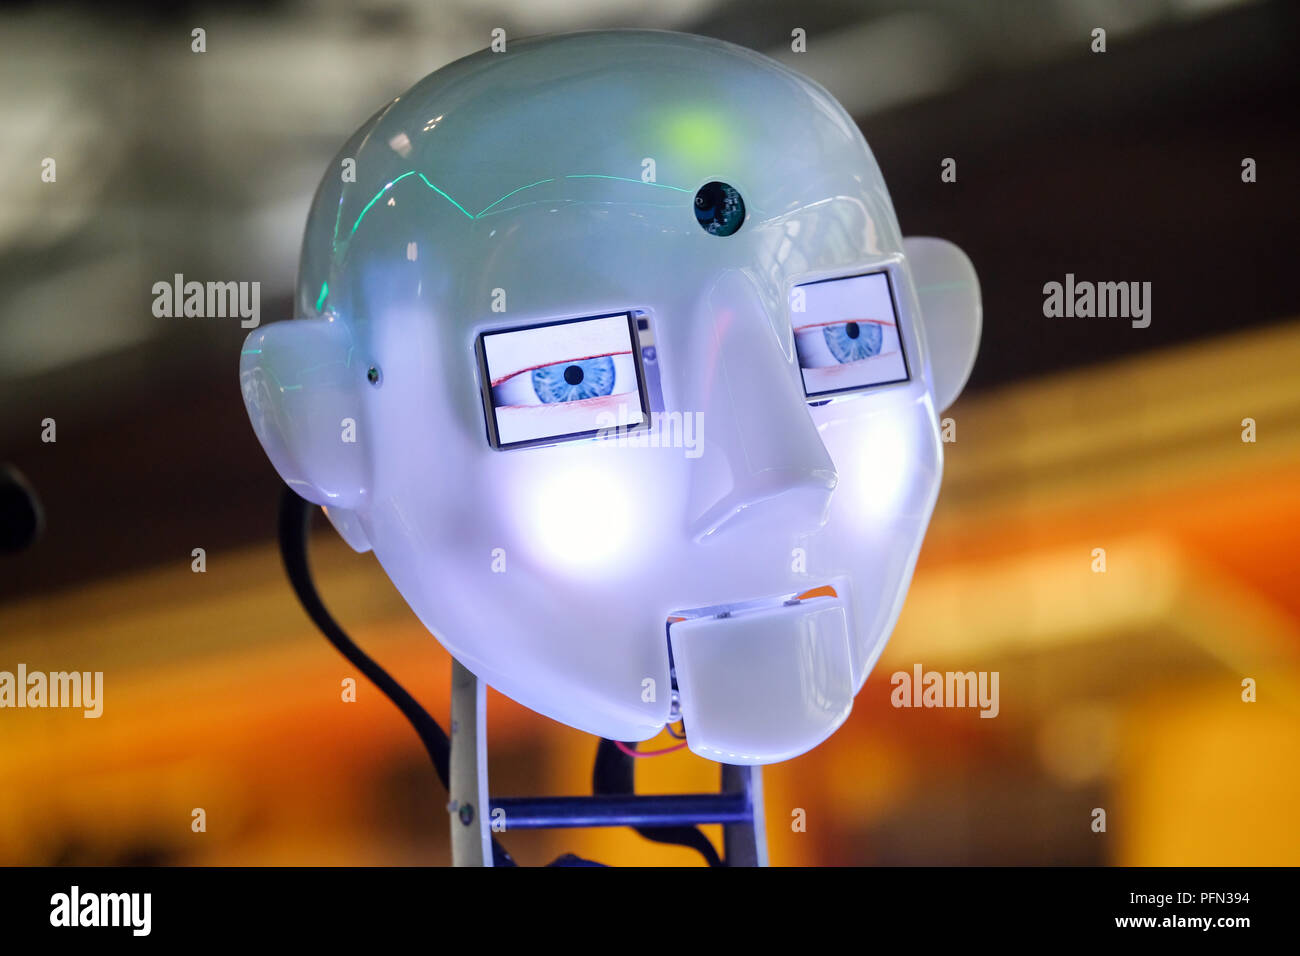 Head of a humanoid speaking, singing and dancing robot with artificial intelligence at the Heinz Nixdorf MuseumsForum (HNF) in Paderborn, Germany - Stock Image